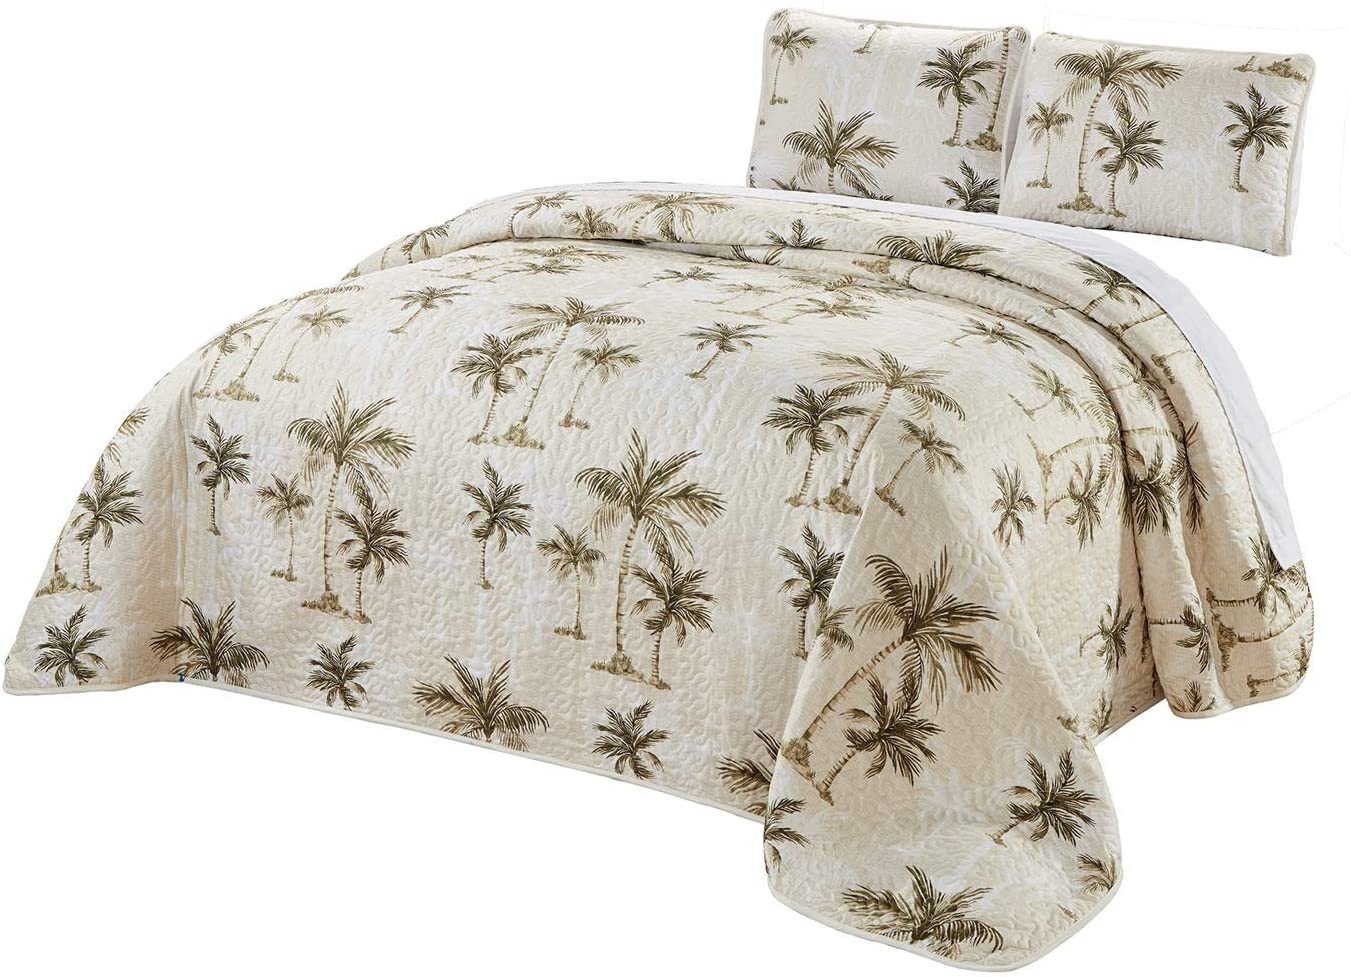 TOMMY BAHAMA Bonny Cove Coral Pink Green Tropical Floral Palms  TWIN Quilt Set